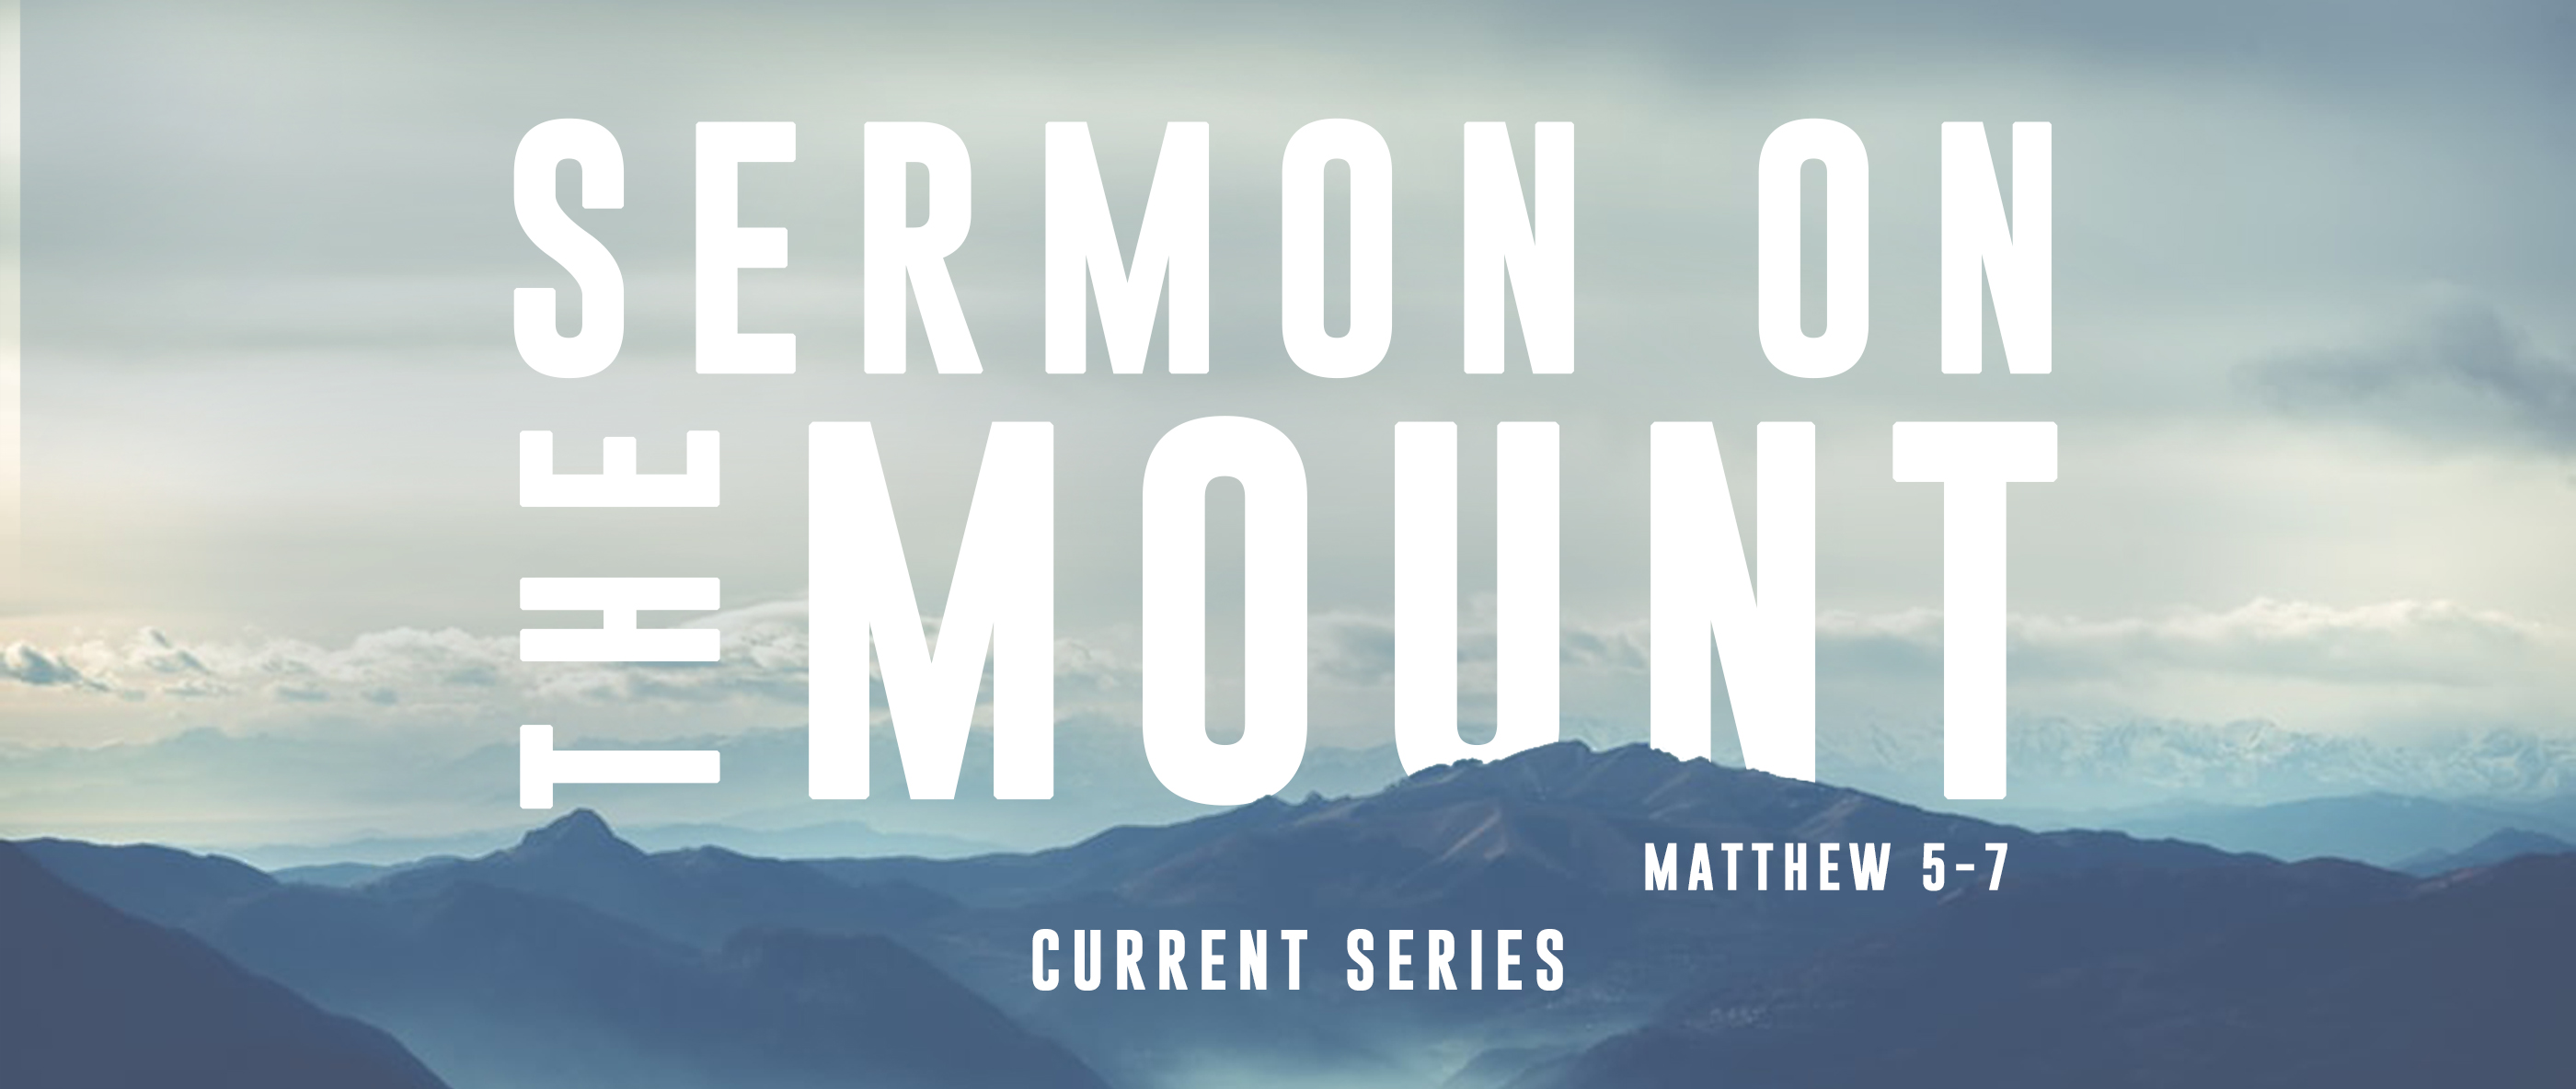 Sermon on Mt main banner series current